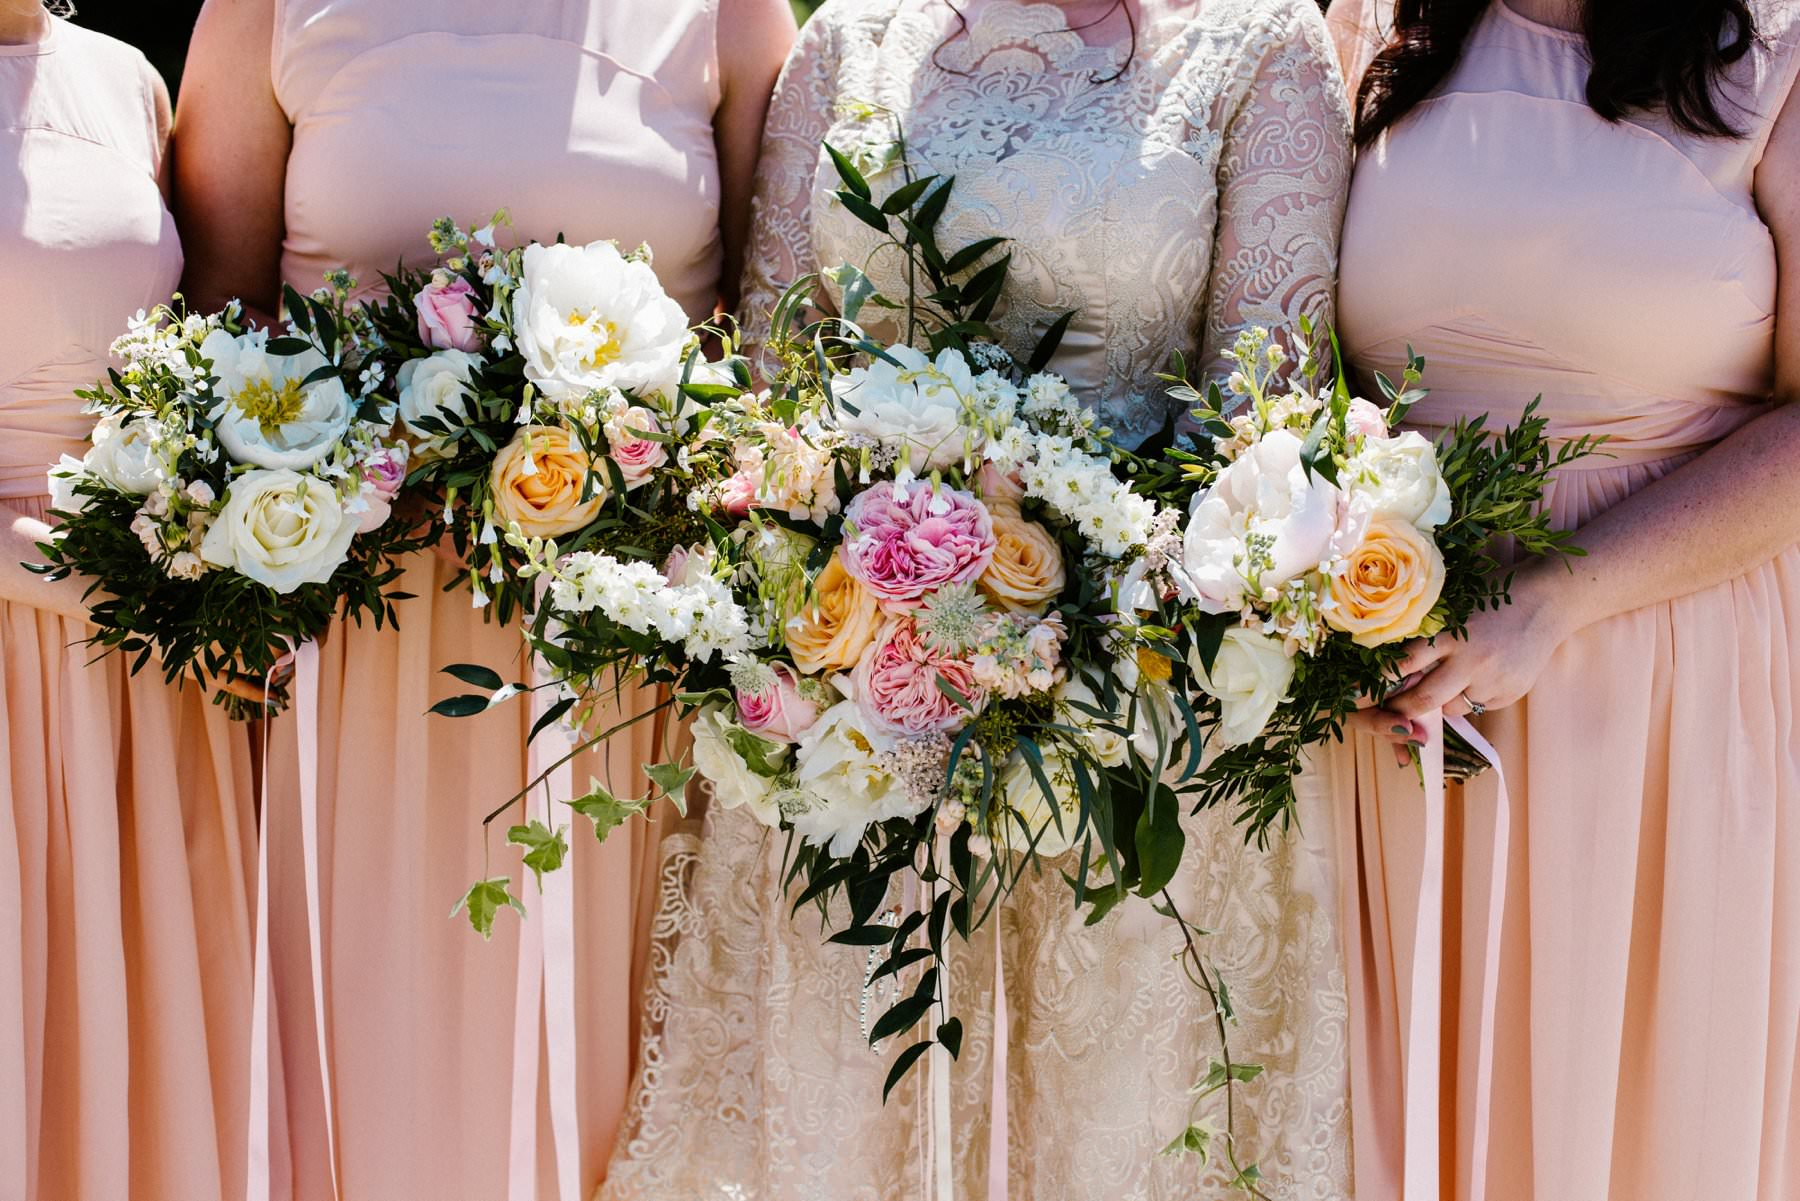 bride and bridesmaid show off wedding flowers